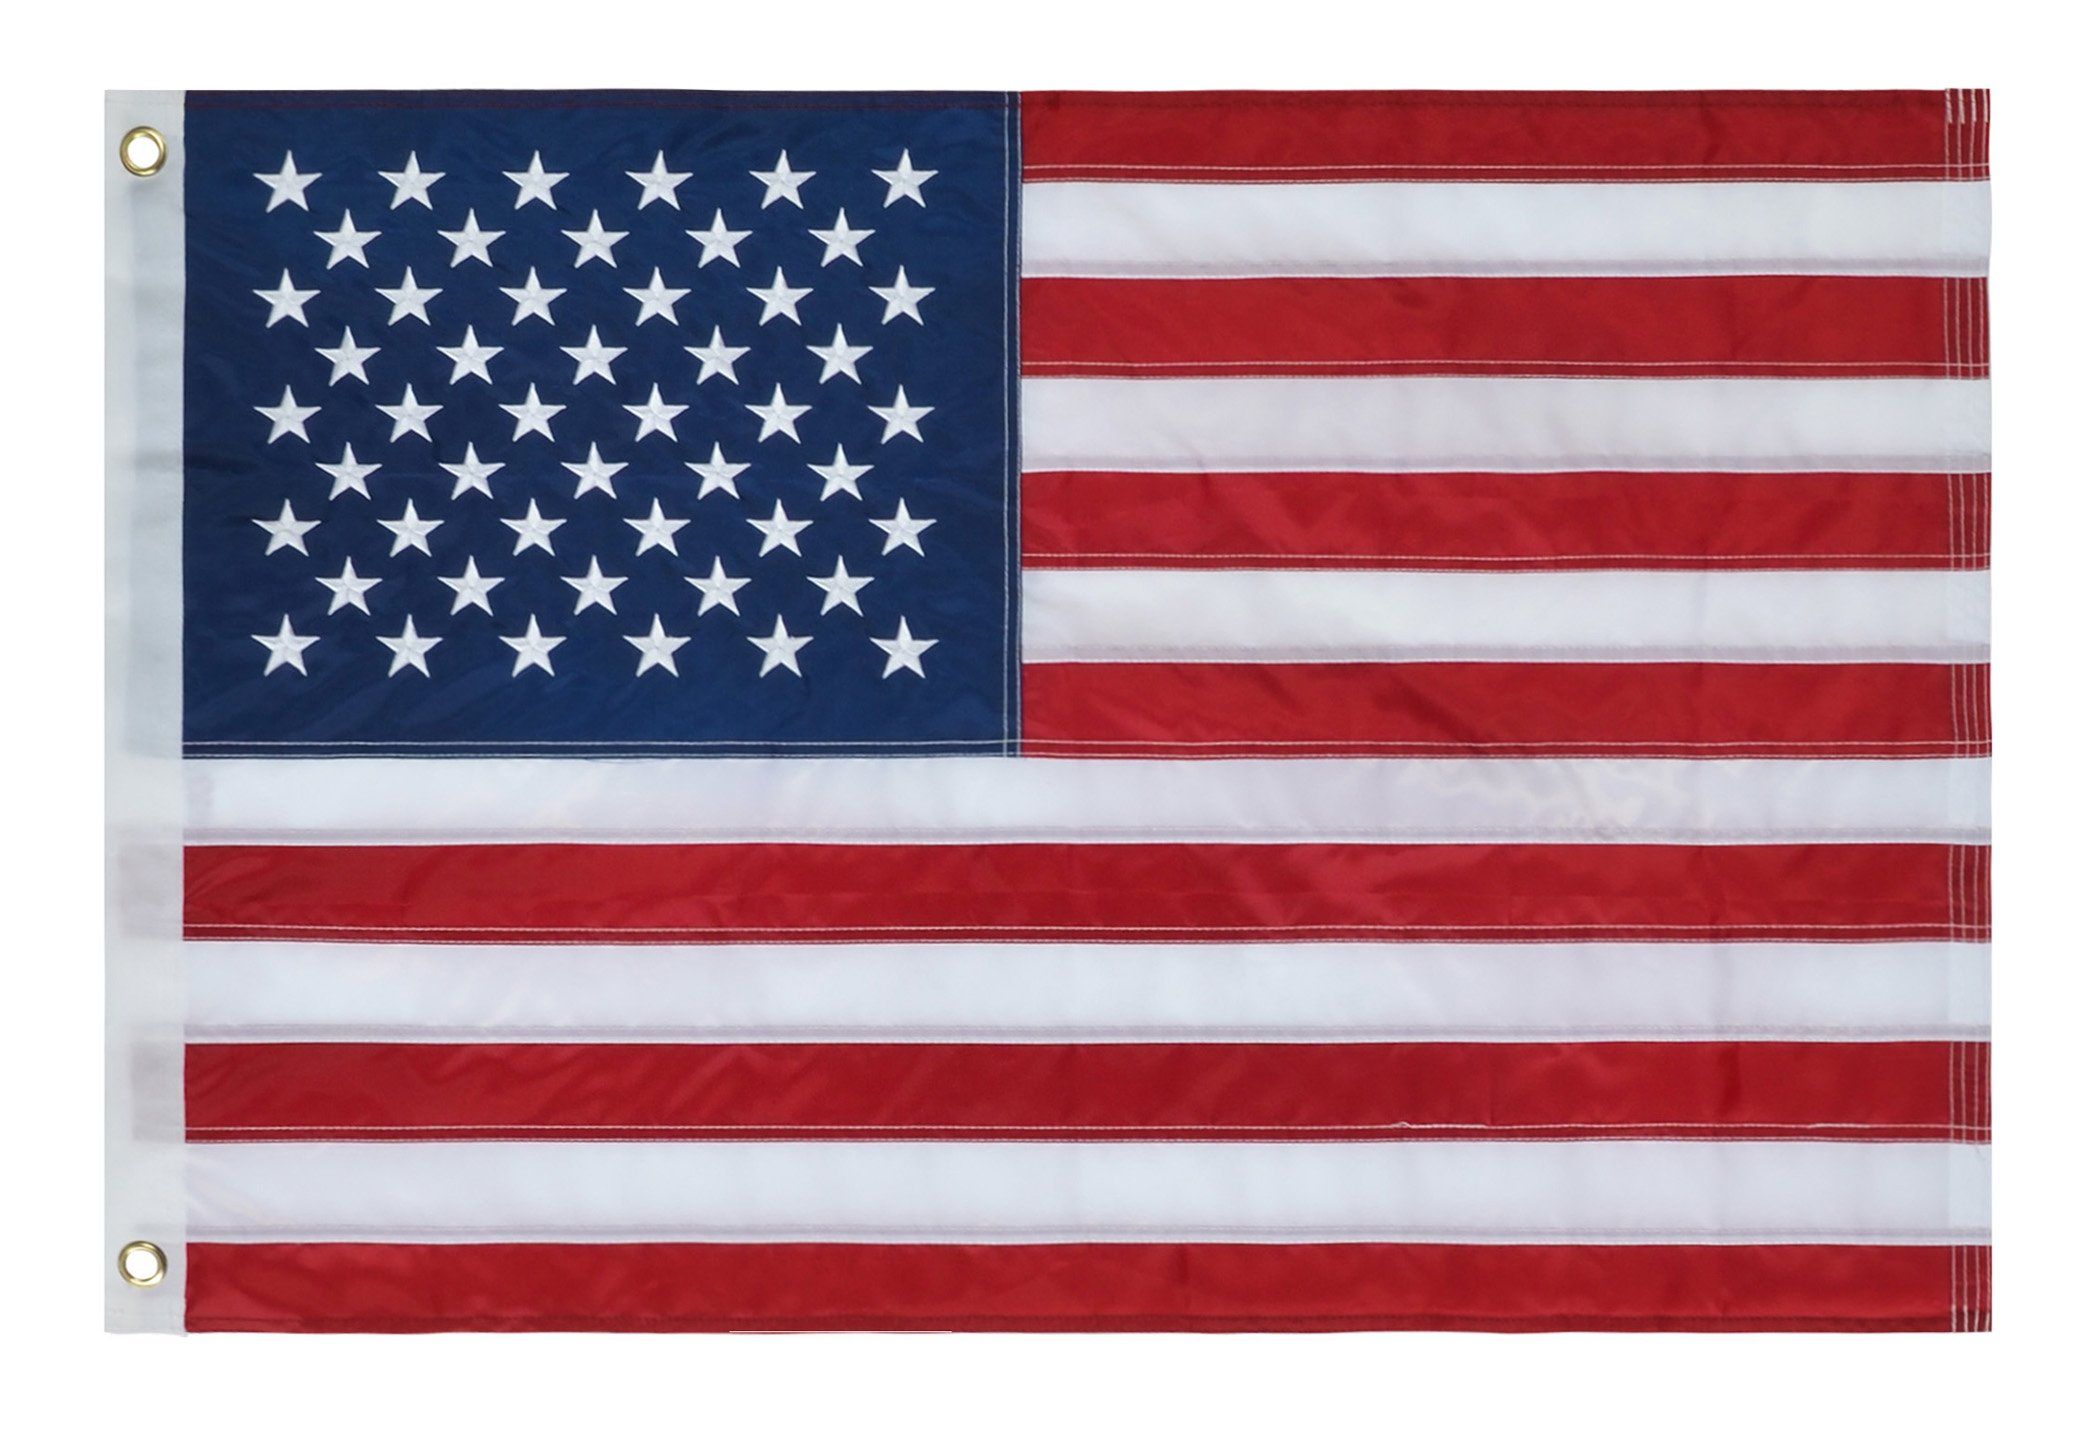 American Flag 8x12 ft.–Heavyweight Oxford Nylon Built for Outdoor Use, UV Protected and Featuring Embroider Stars and Sewn Stripes and Brass Grommets (8'x12') by Sheface